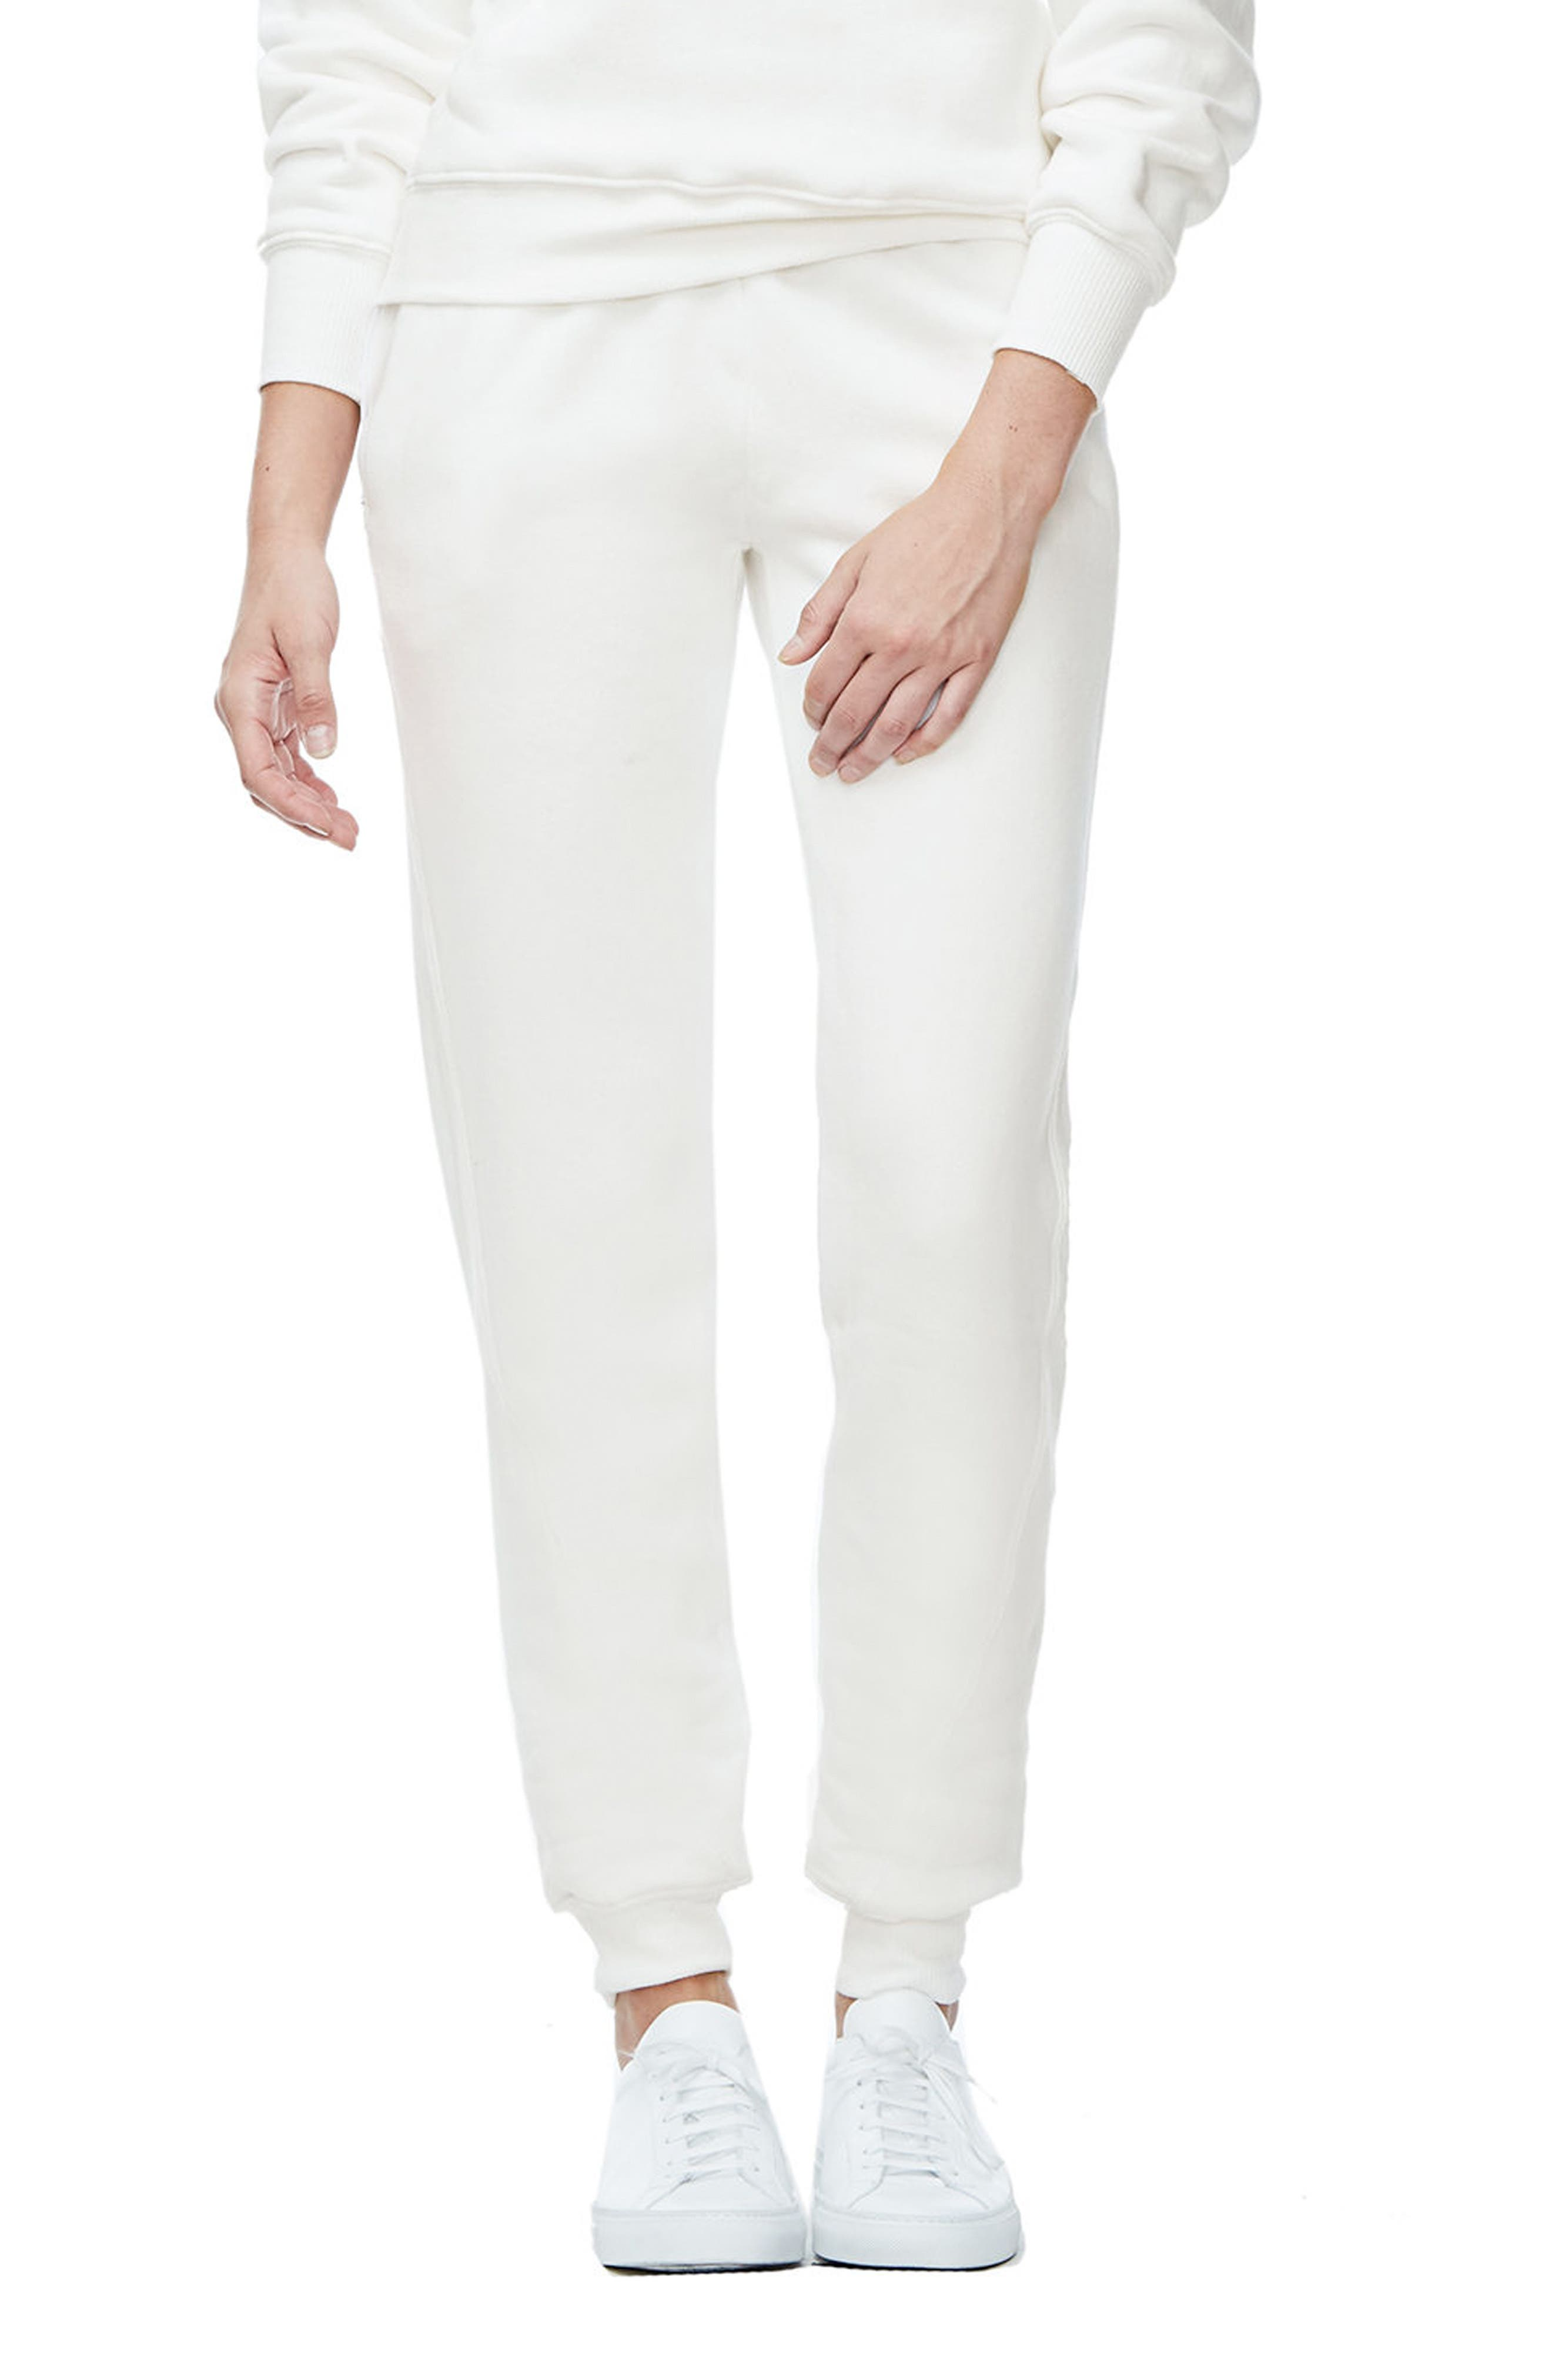 Good Sweats The Twisted Seam Pants,                             Main thumbnail 1, color,                             Off White